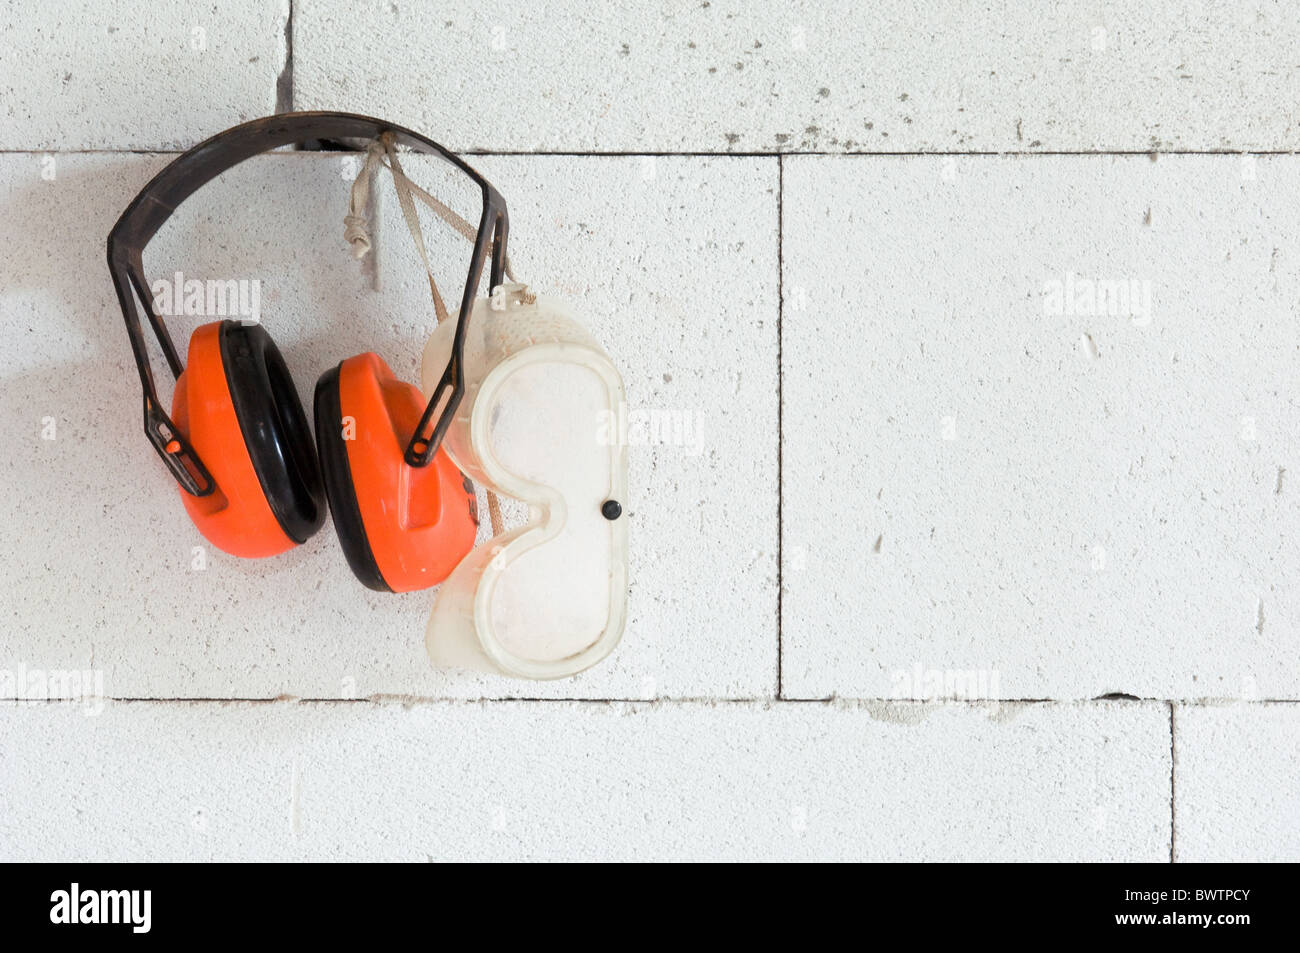 Protection equipment - Stock Image